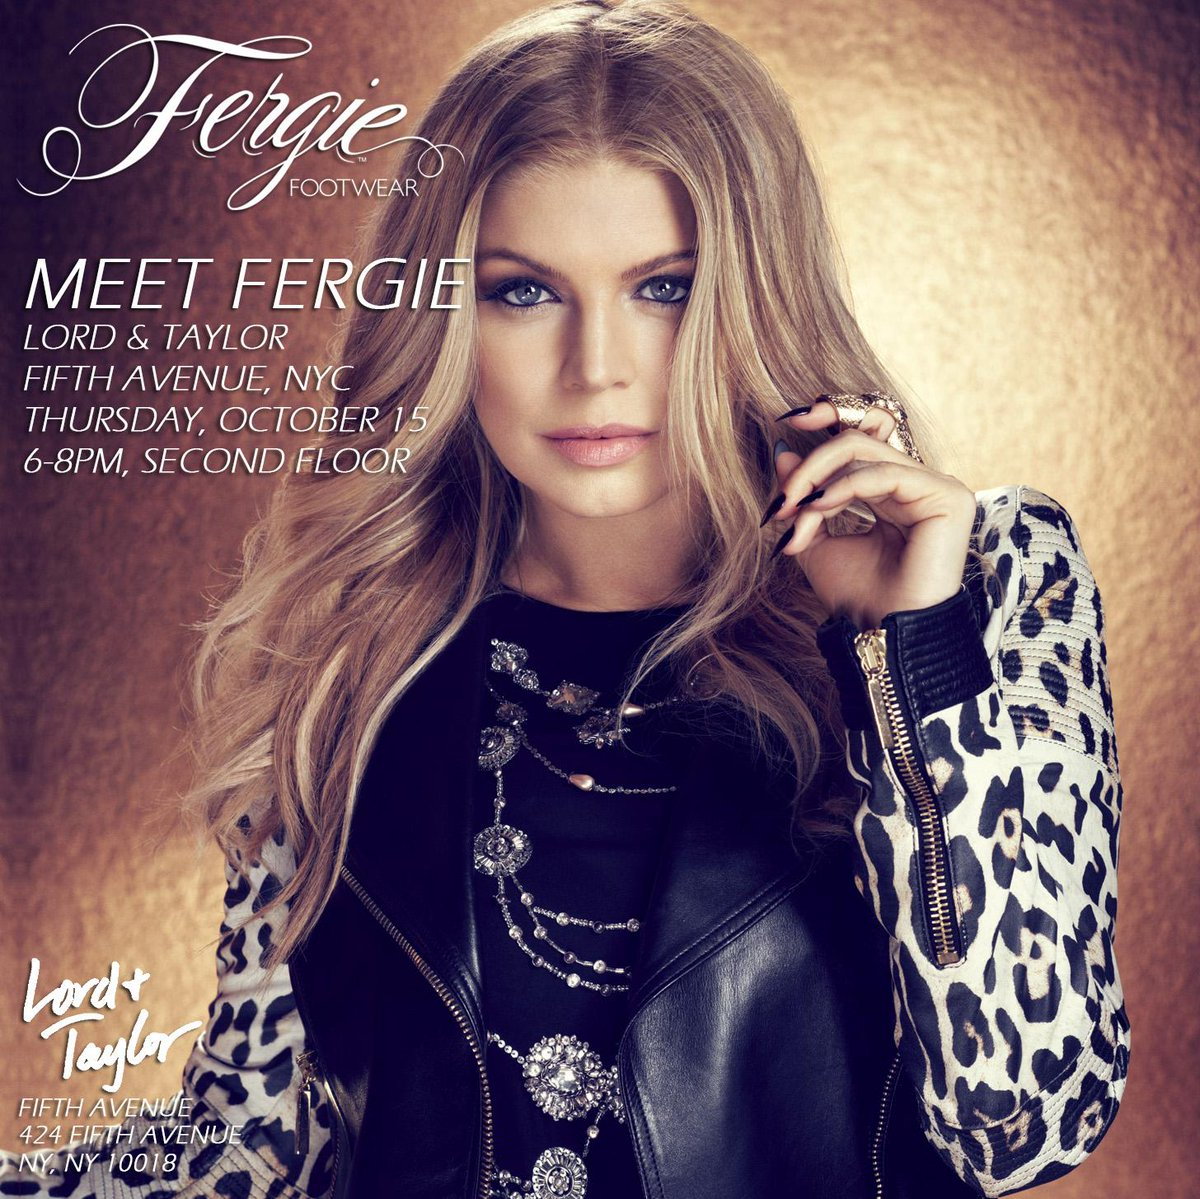 RT @FergieFootwear: 10/15 Meet @Fergie 6-8pm at @LordAndTaylor NYC! W/ purchase meet #Fergie & receive signed pic.http://t.co/RdrYSLbdn2 ht…